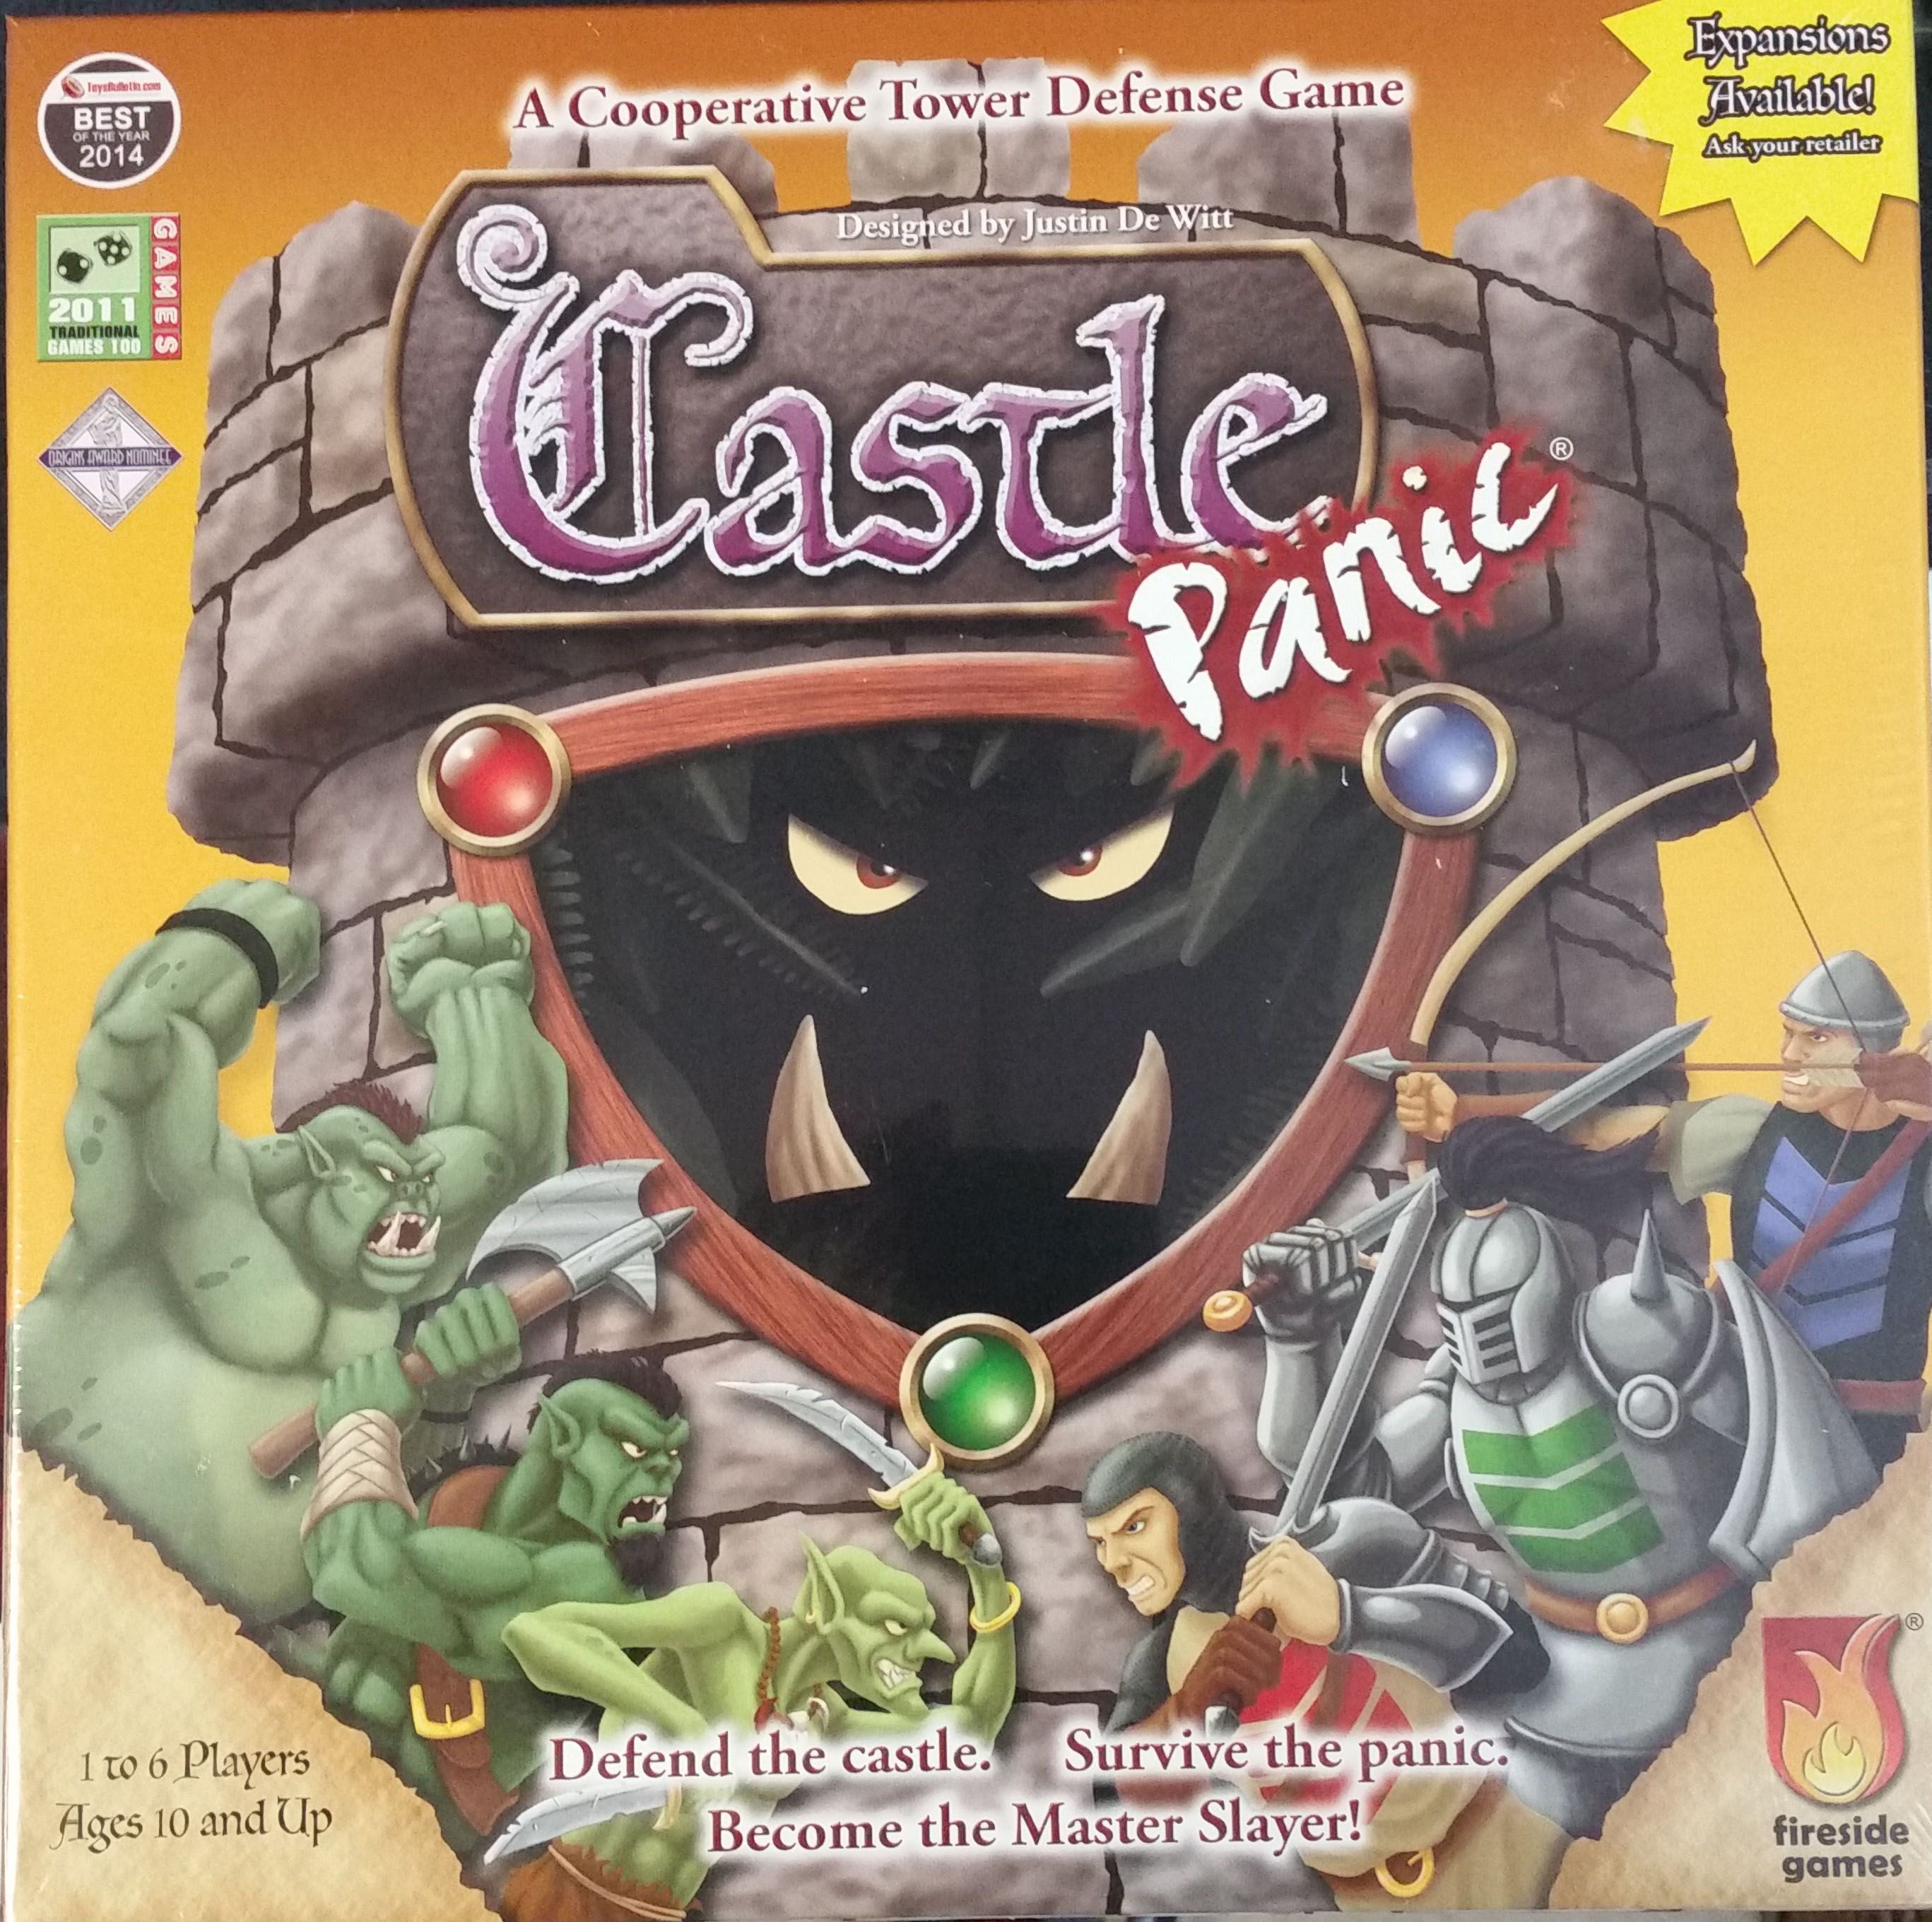 Castle Panic is the first cooperative game I ever played